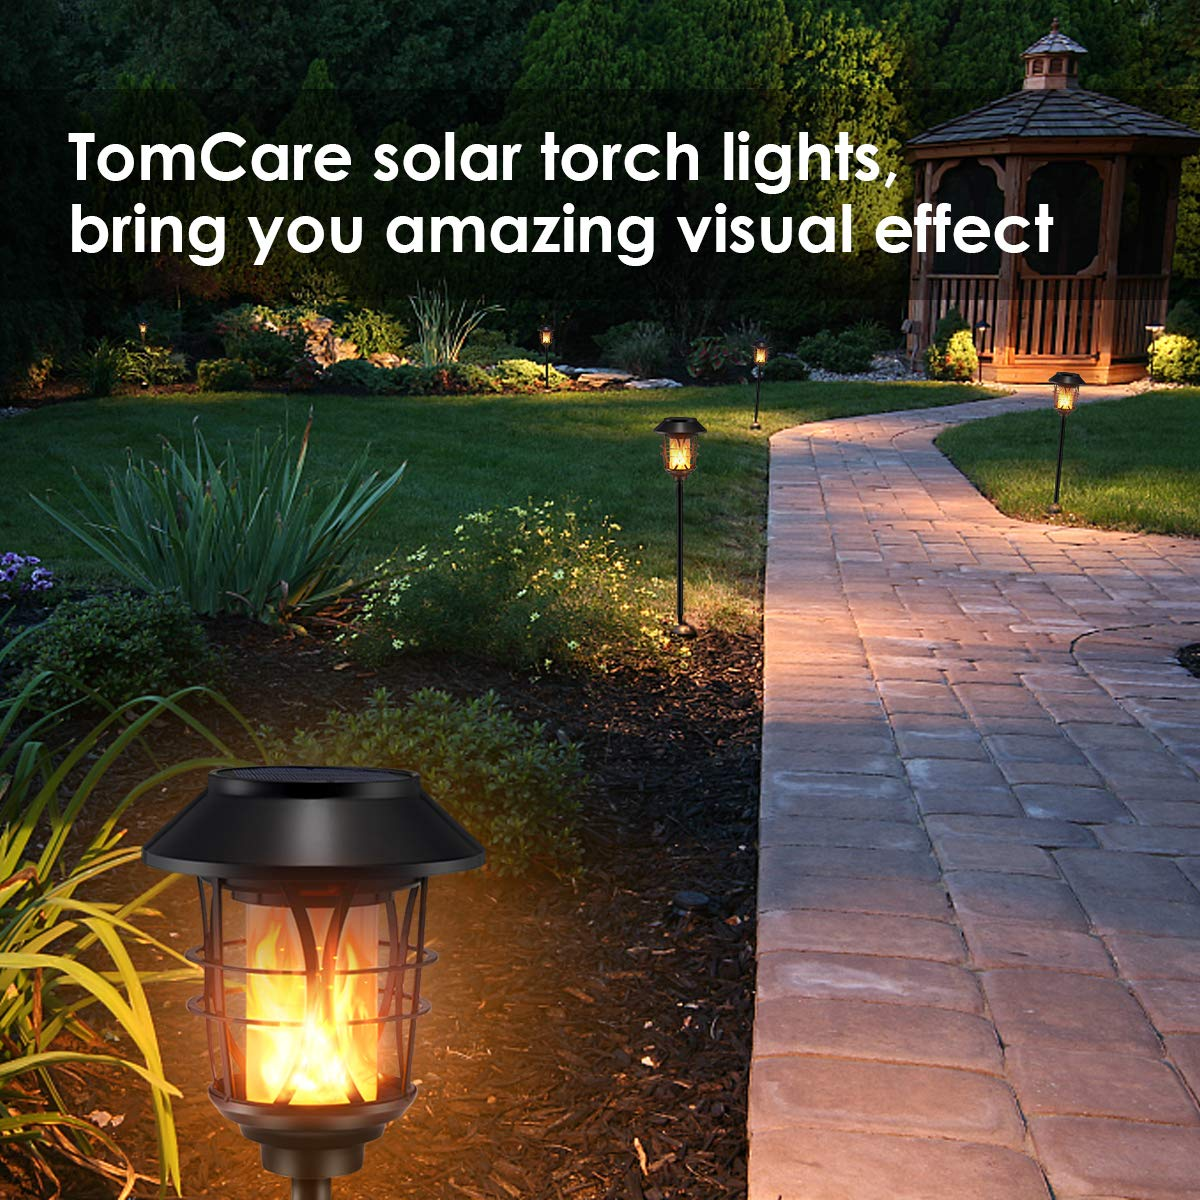 TomCare Solar Lights Metal Flickering Flame Solar Torches Lights Waterproof Outdoor Heavy Duty Lighting Solar Pathway Lights Landscape Lighting Dusk to Dawn Auto On/Off for Garden Patio Yard, 4 Pack by TomCare (Image #7)